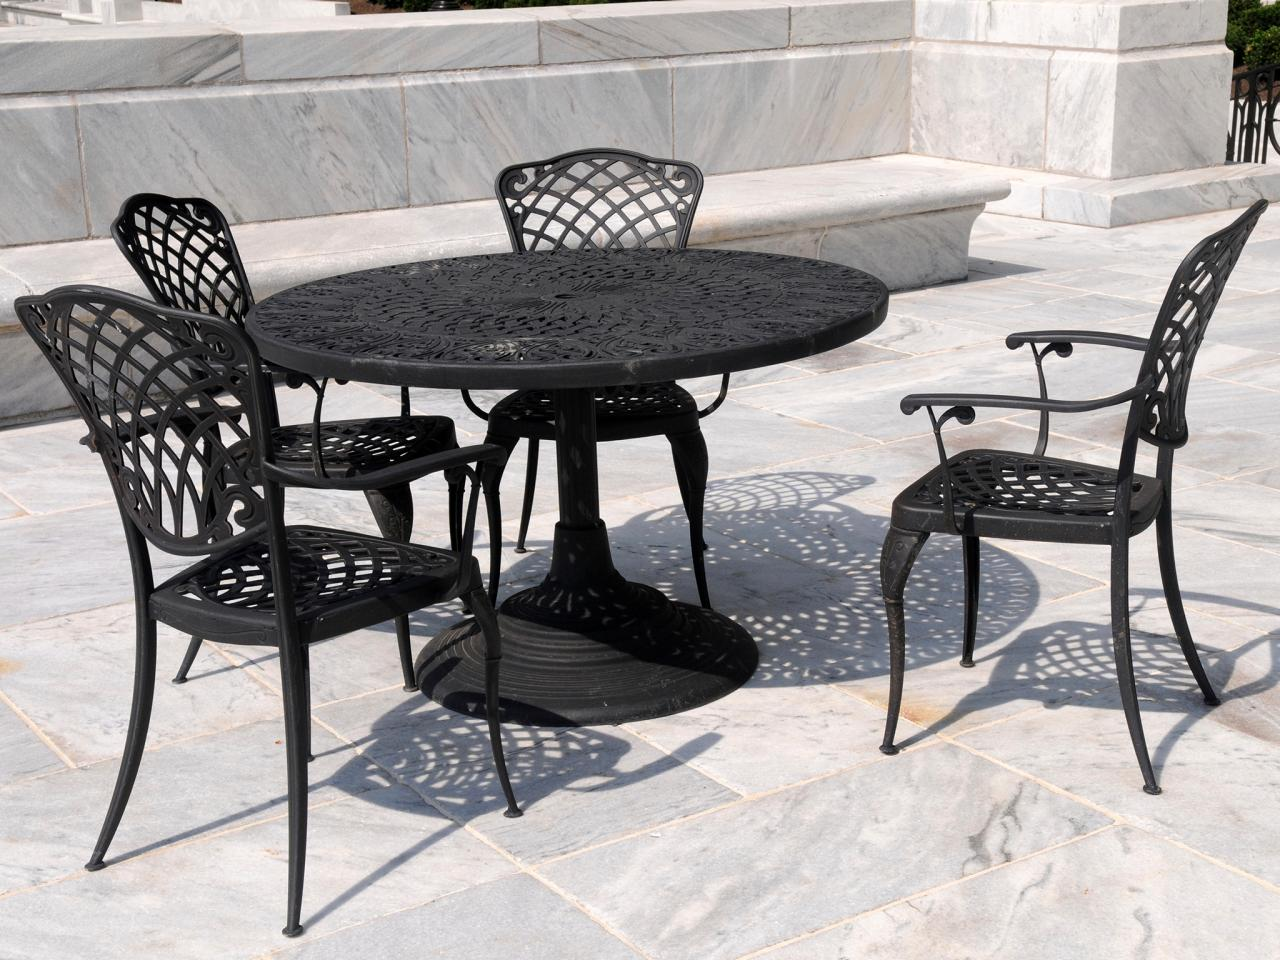 wrought iron patio furniture RQWDXRM